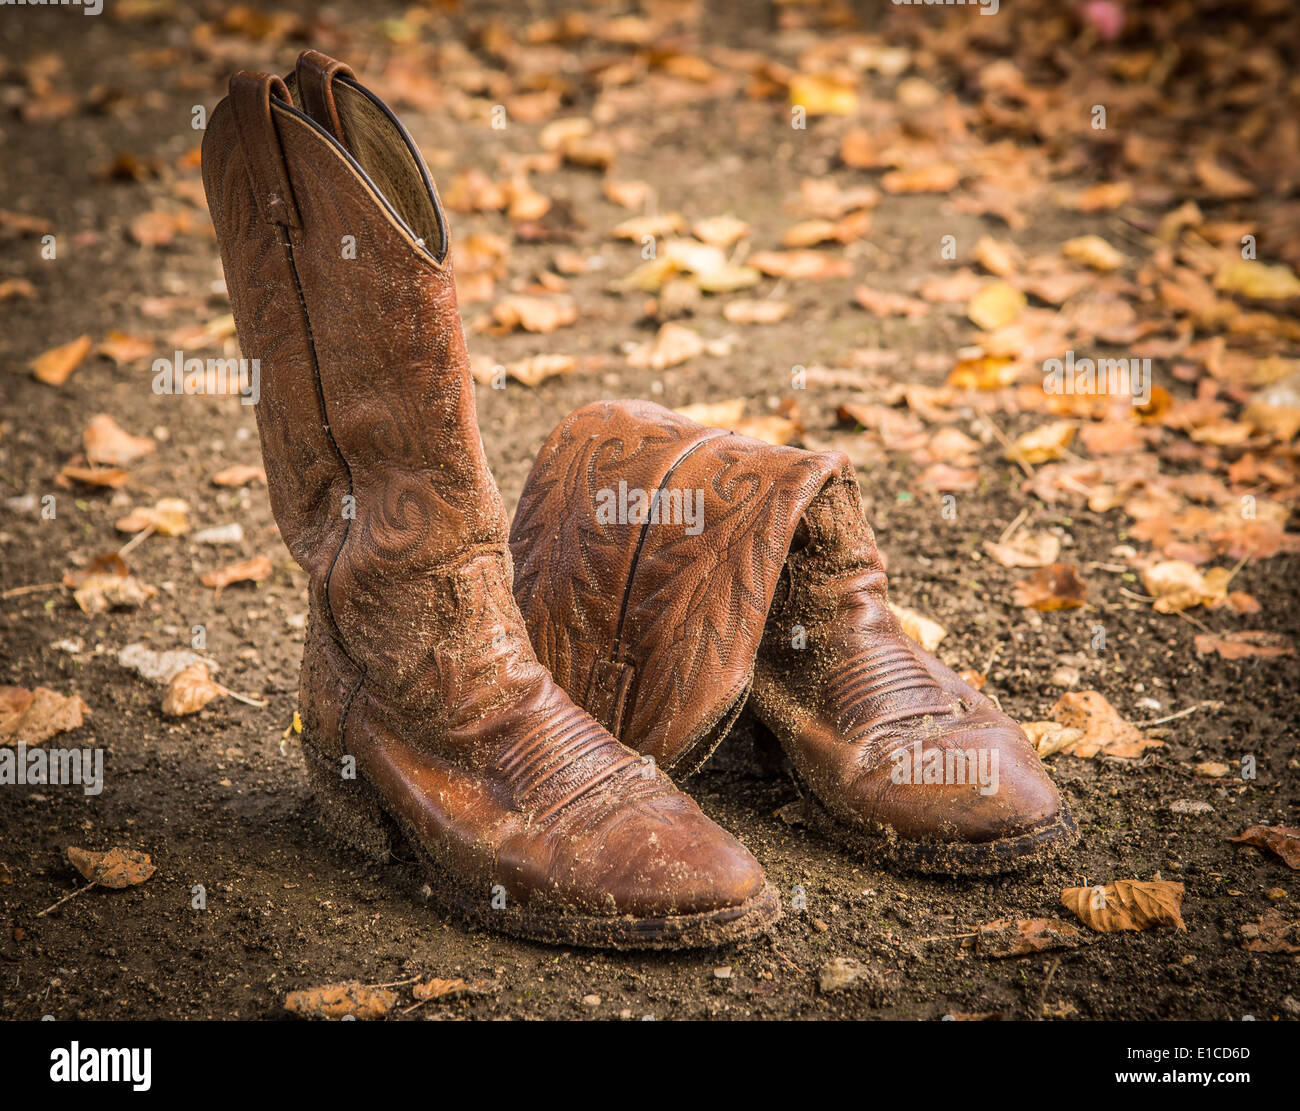 1c8e2445727 Brown Cowboy Boots Stock Photos & Brown Cowboy Boots Stock Images ...